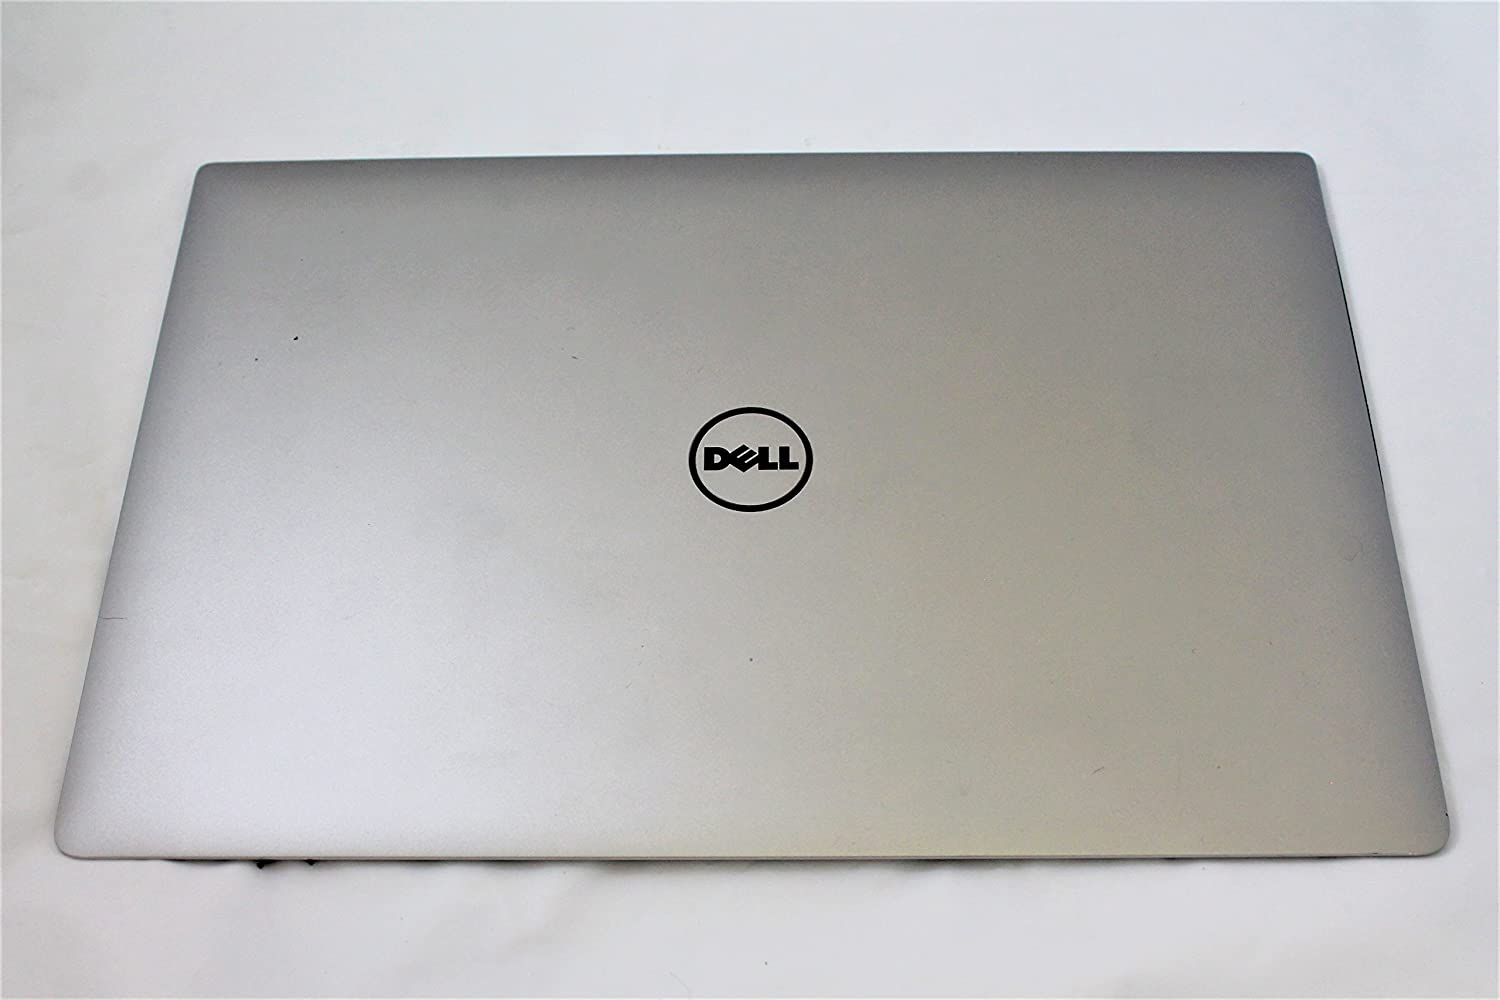 Dell XPS 9550 Laptop Silver Top Back Cover J83X5